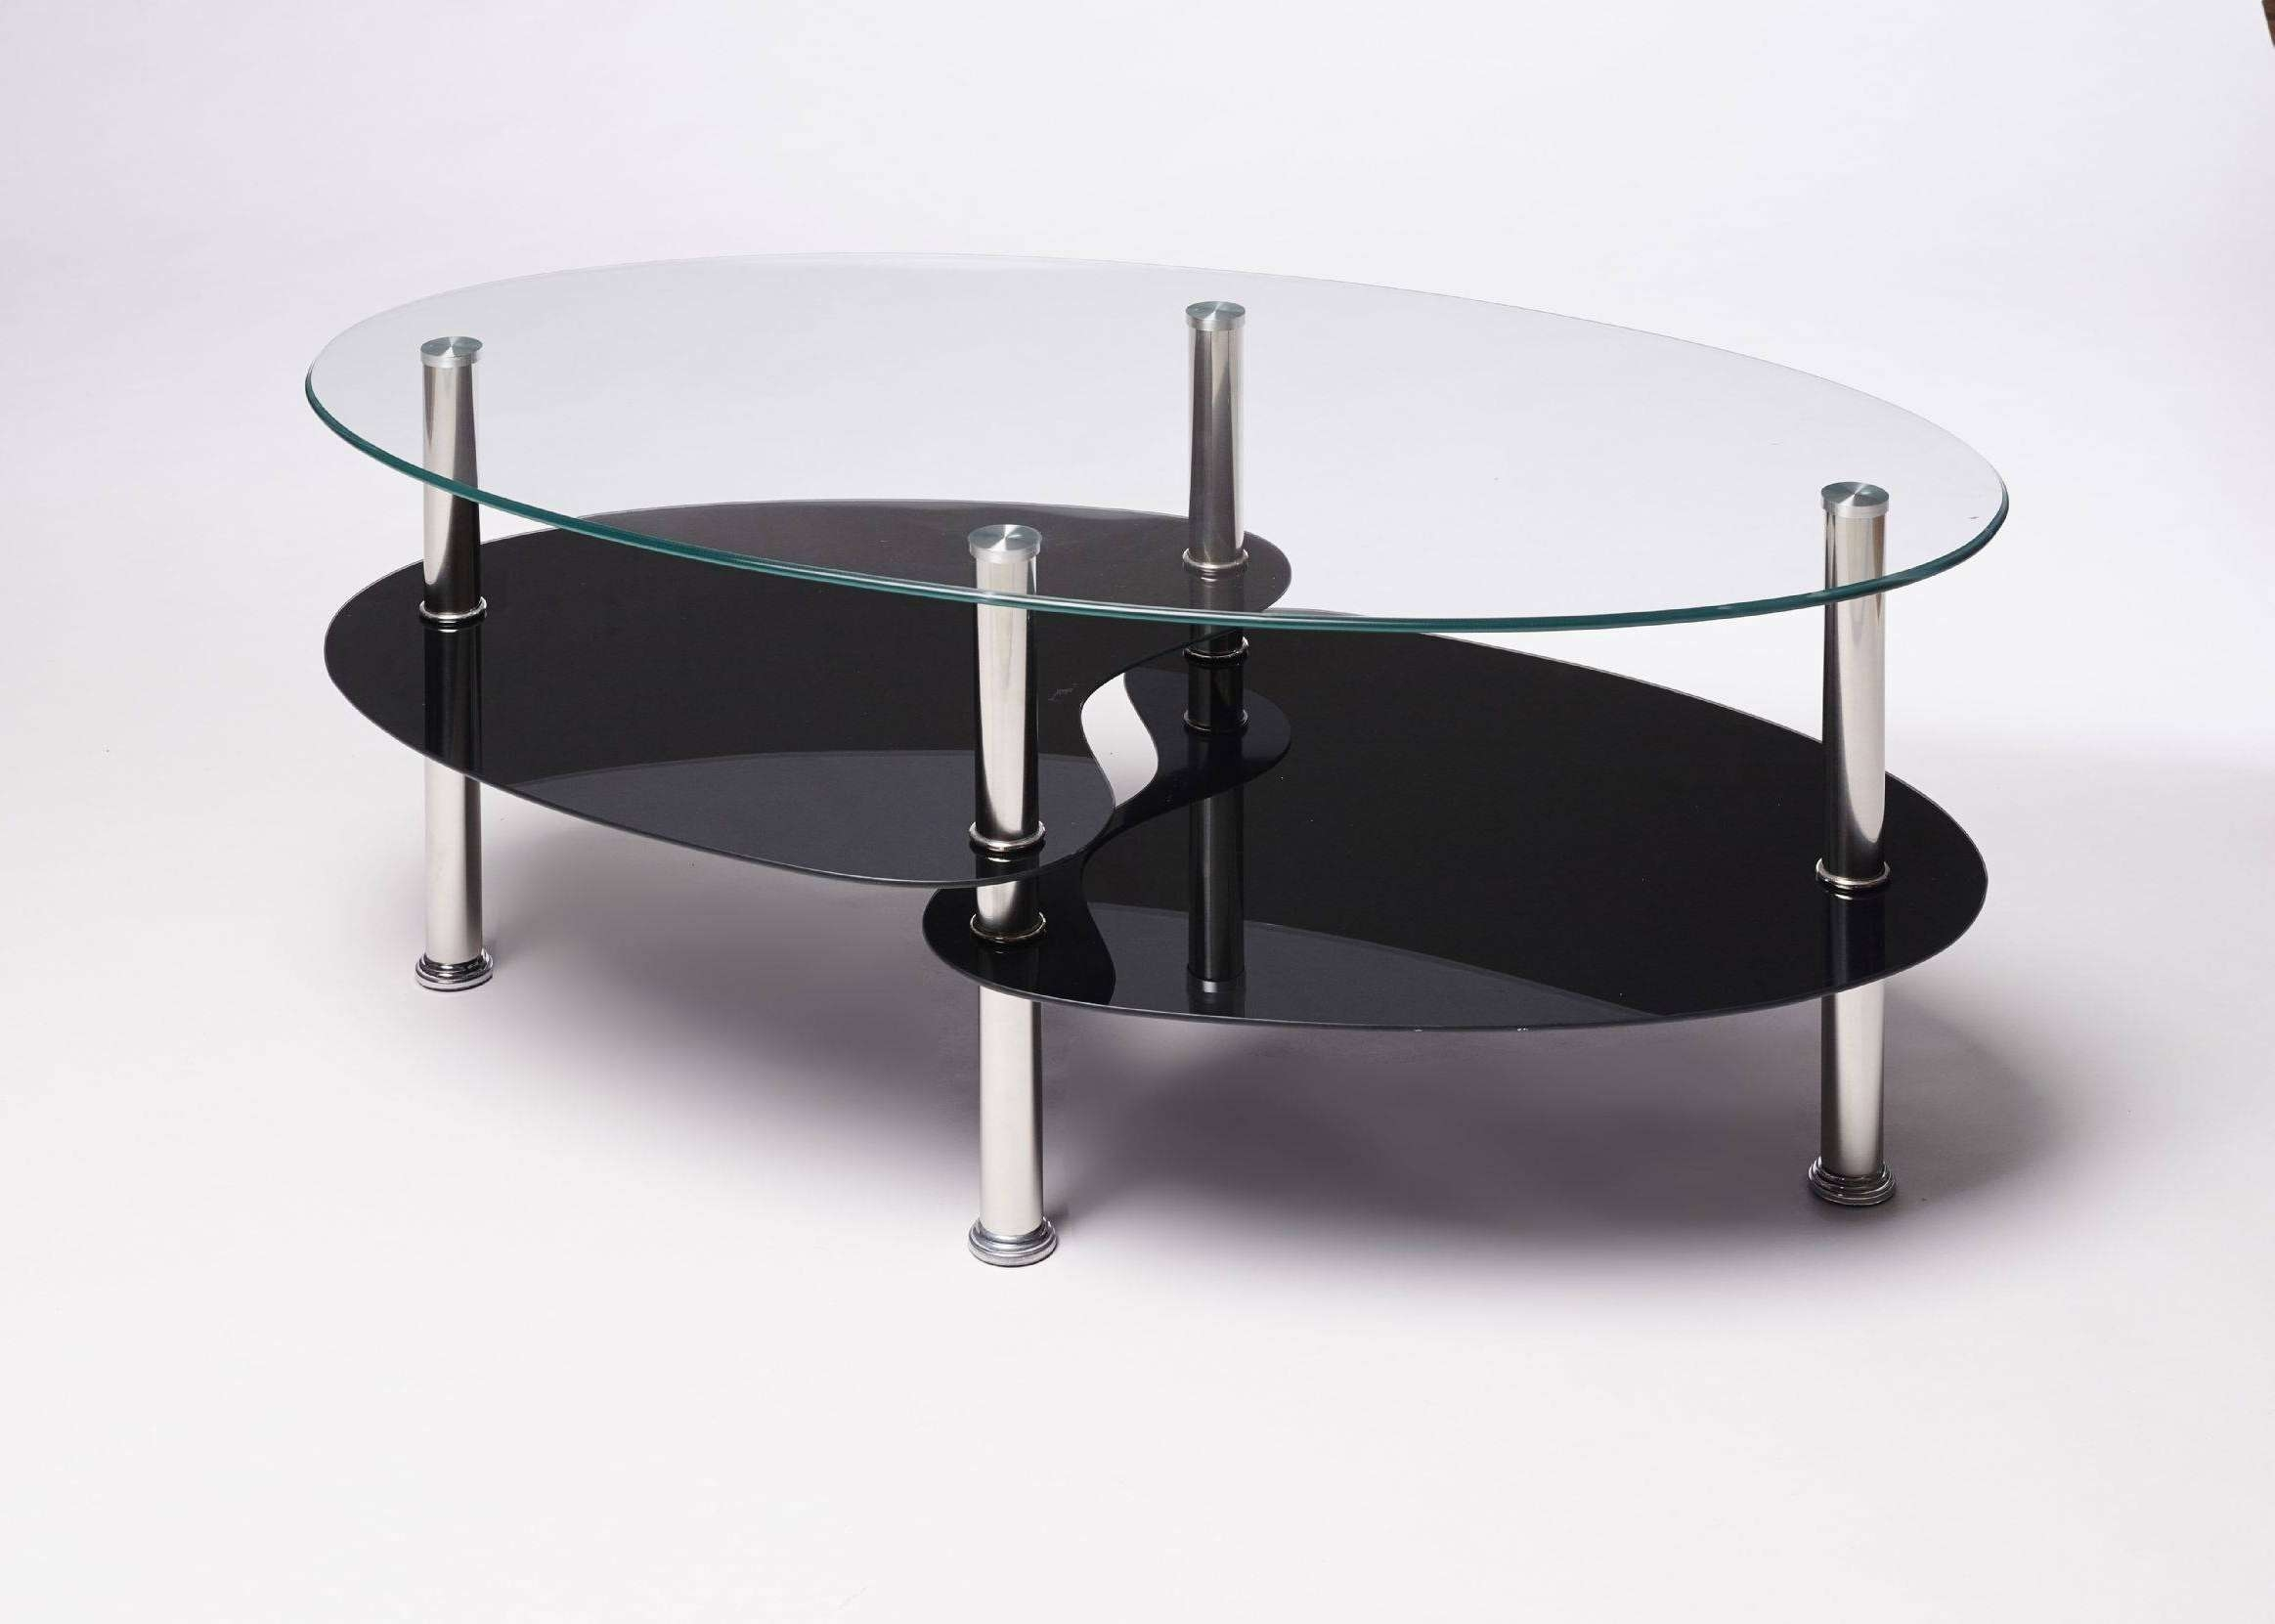 Black Oval Coffee Table Set • Table Setting Design Regarding Preferred Black Oval Coffee Table (View 7 of 20)